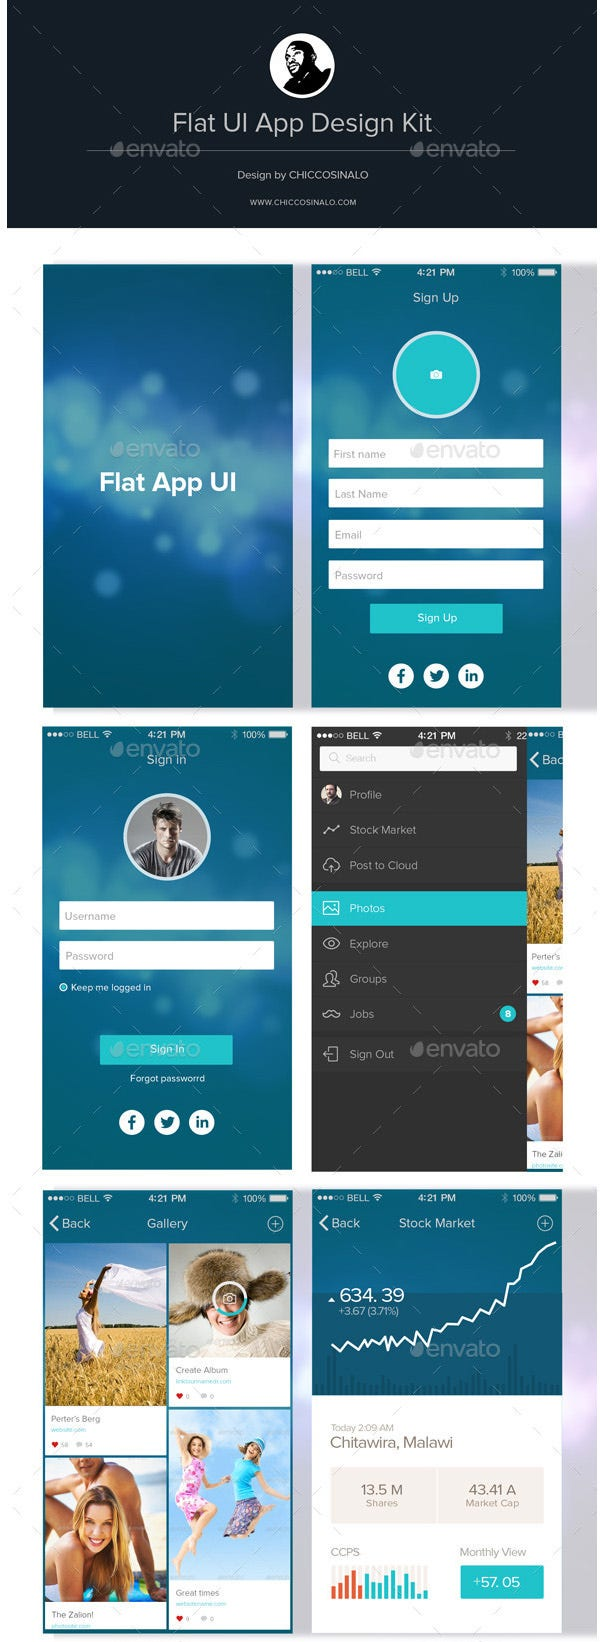 flat app ui design kit